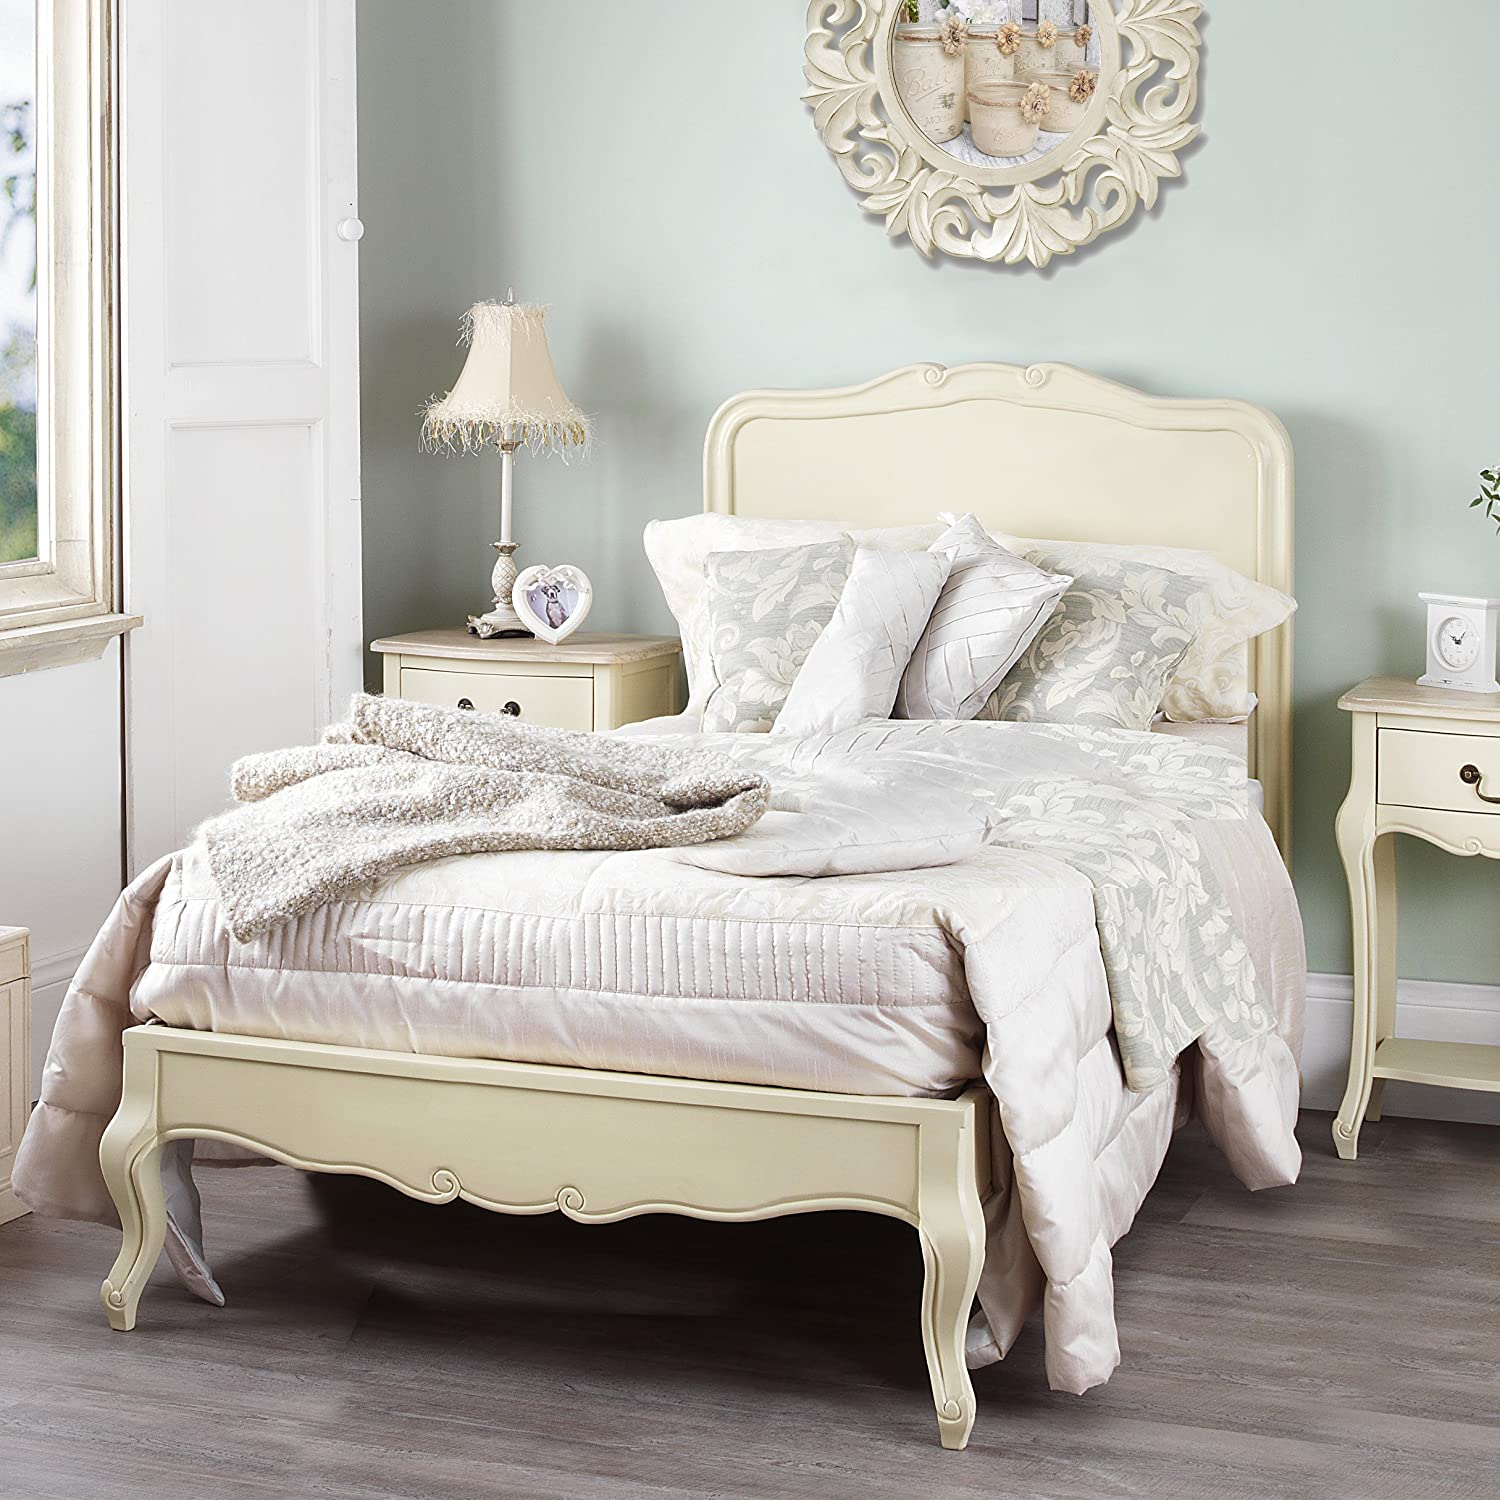 Juliette Shabby Chic Champagne 3ft Single Bed, Stunning ...